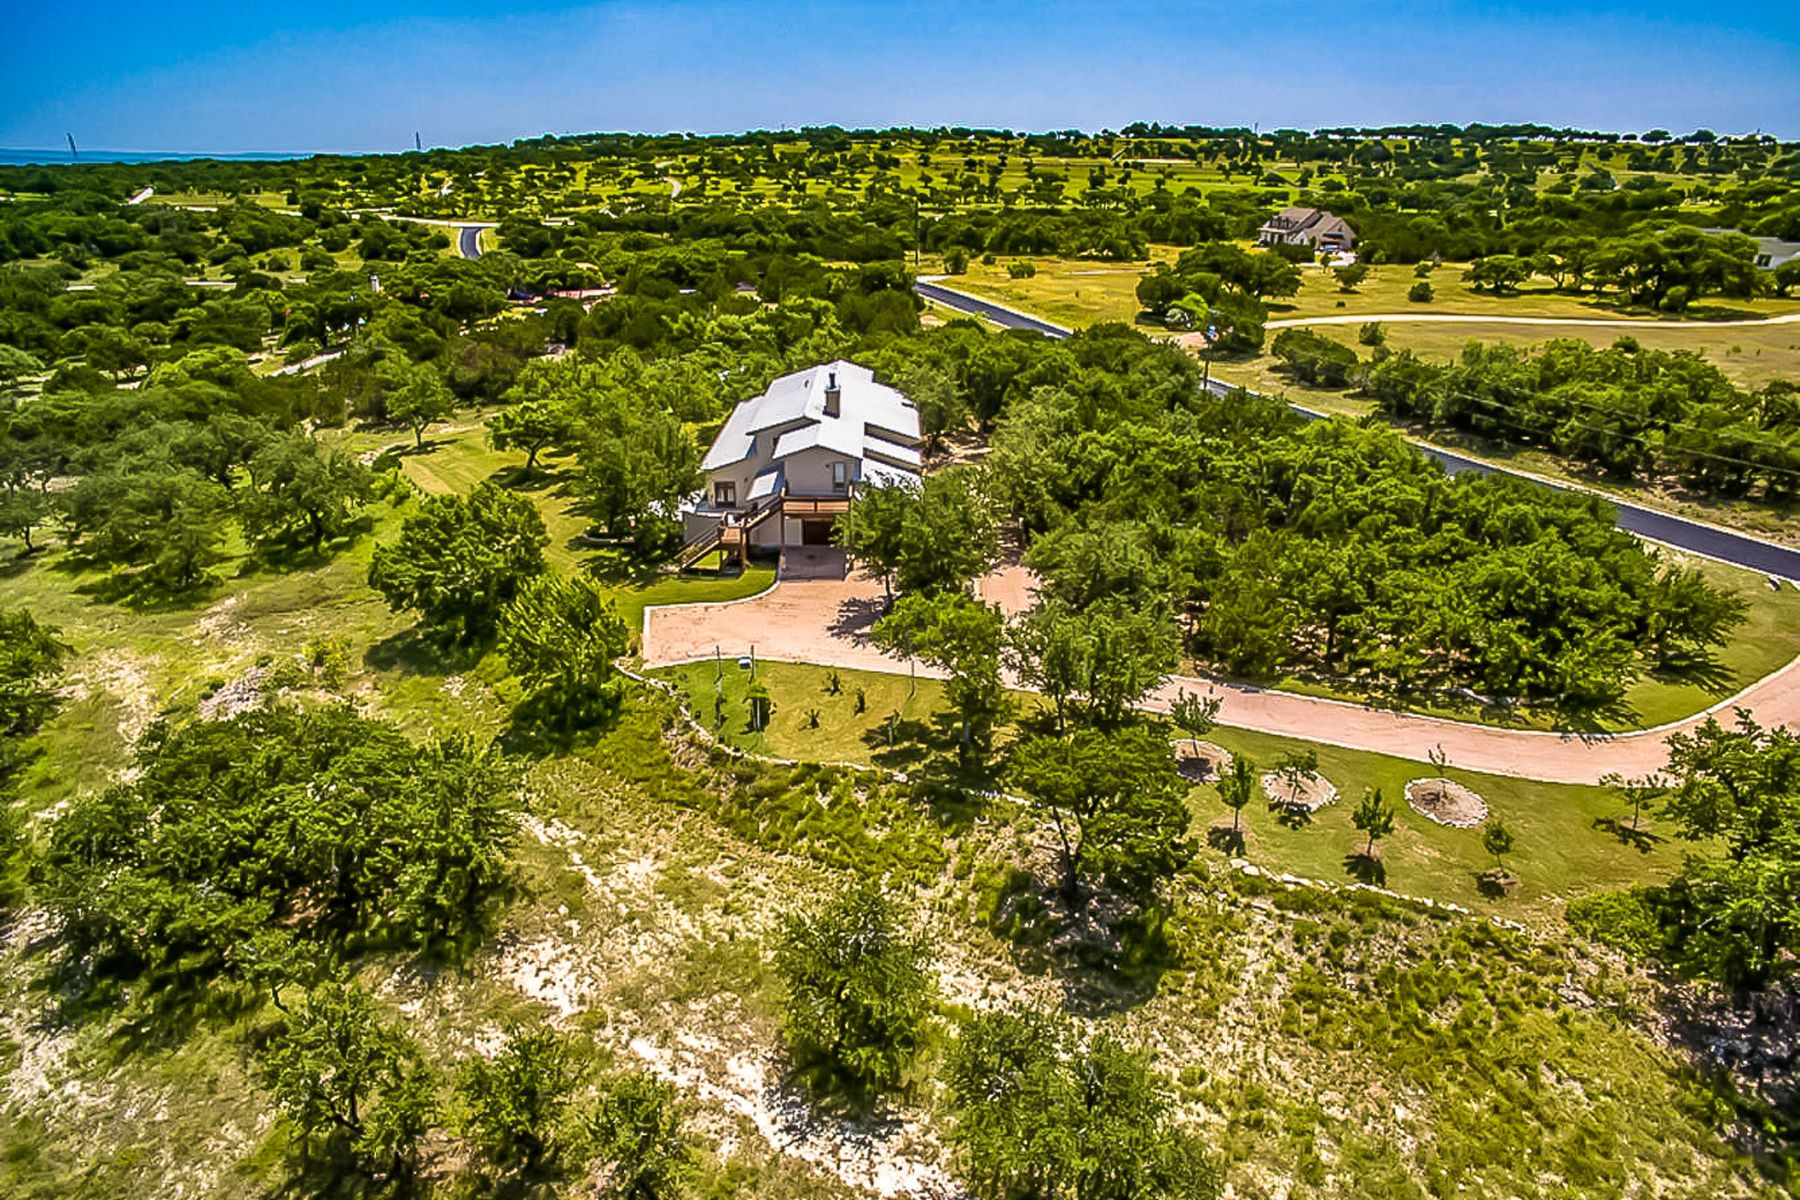 Farm / Ranch / Plantation for Sale at Panoramic Views of the Hill Country 140 Granite Ridge Dr Spicewood, Texas 78669 United States